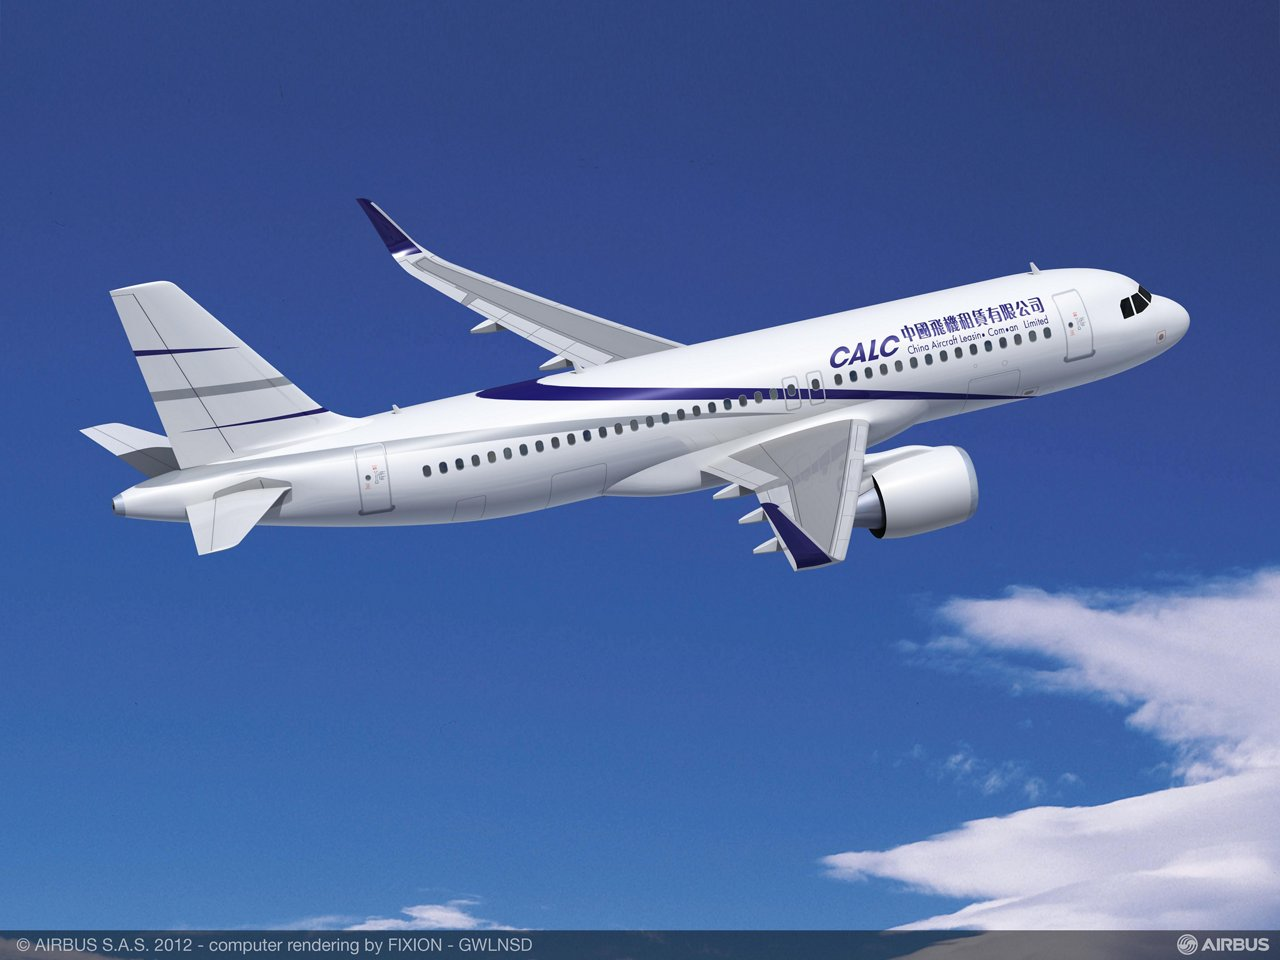 China Aircraft Leasing Company A320neo